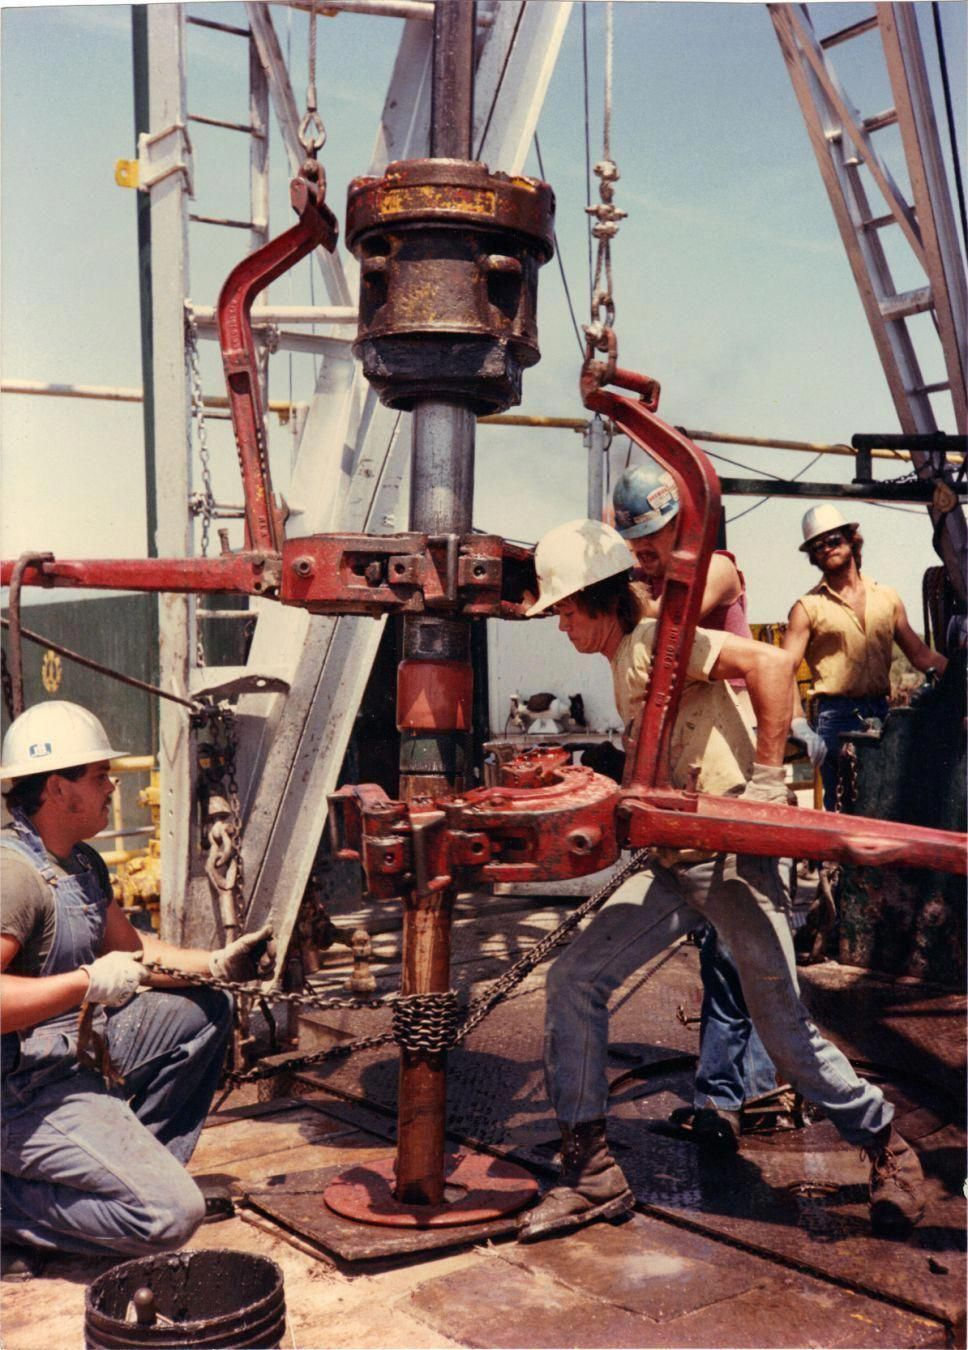 OIL RIGGERS IN TEXAS Oil platform, Oil rig, Oil rig jobs